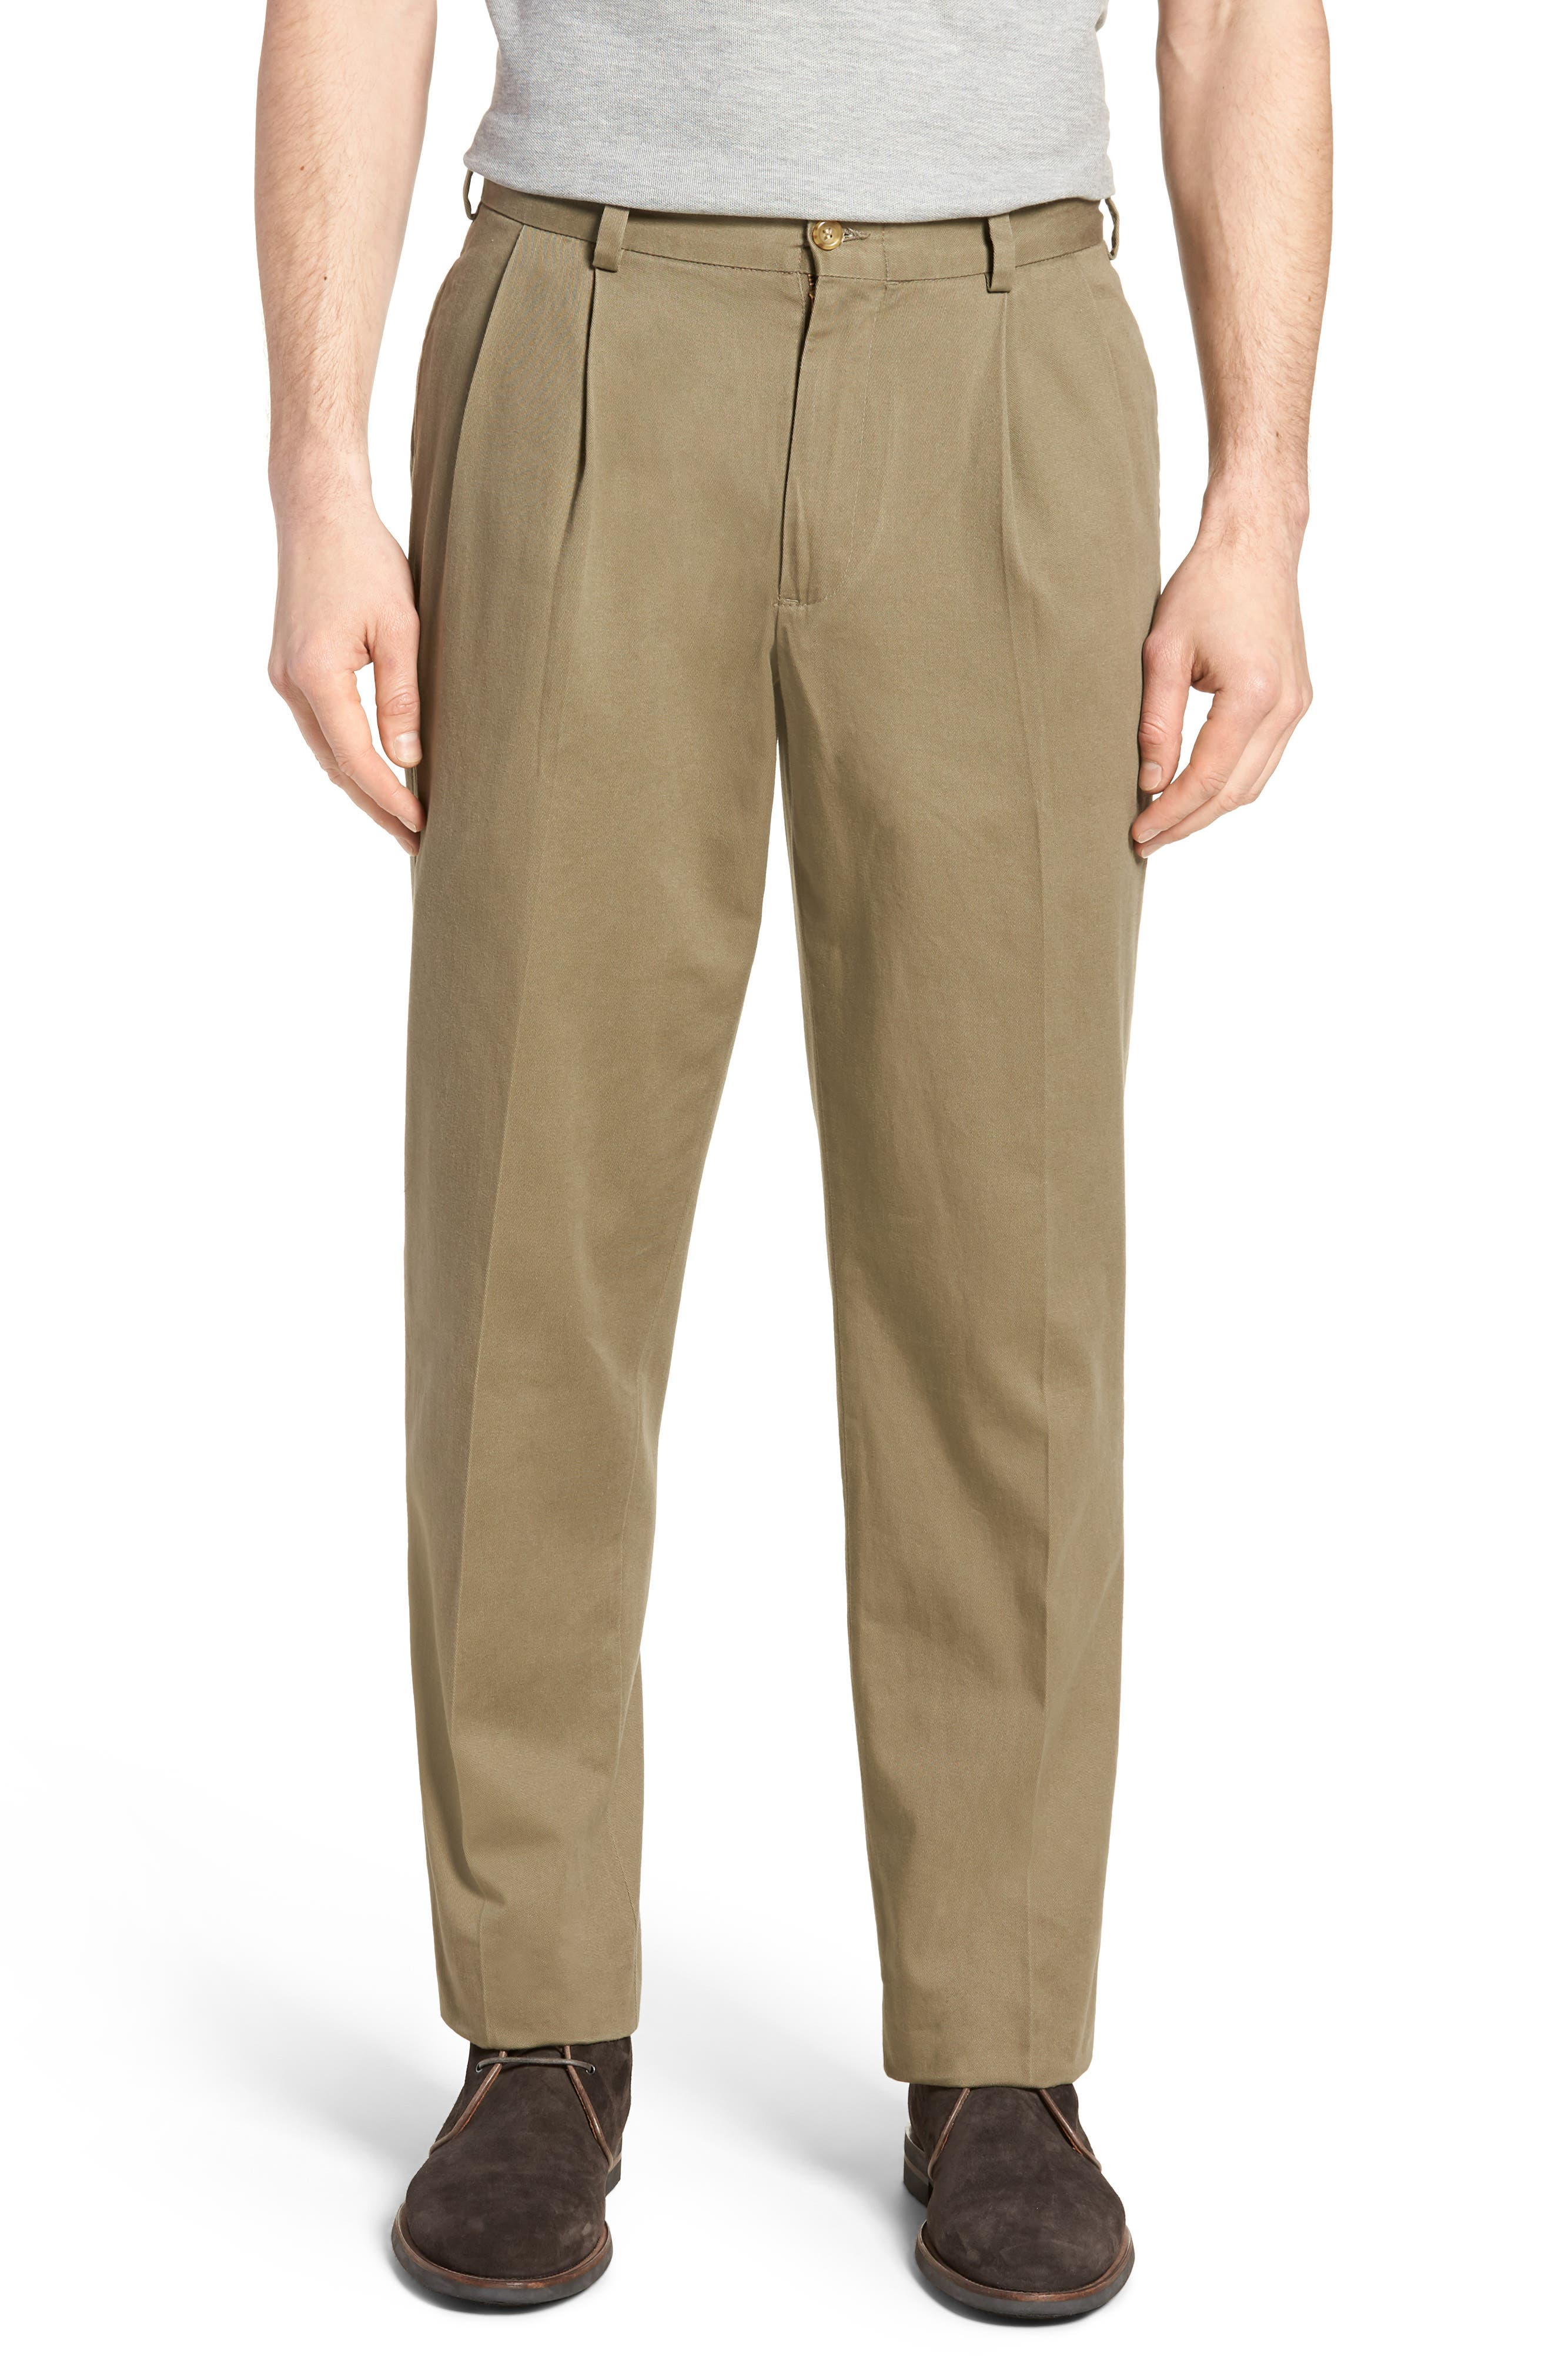 M2 Classic Fit Vintage Twill Pleated Pants,                             Main thumbnail 1, color,                             Olive